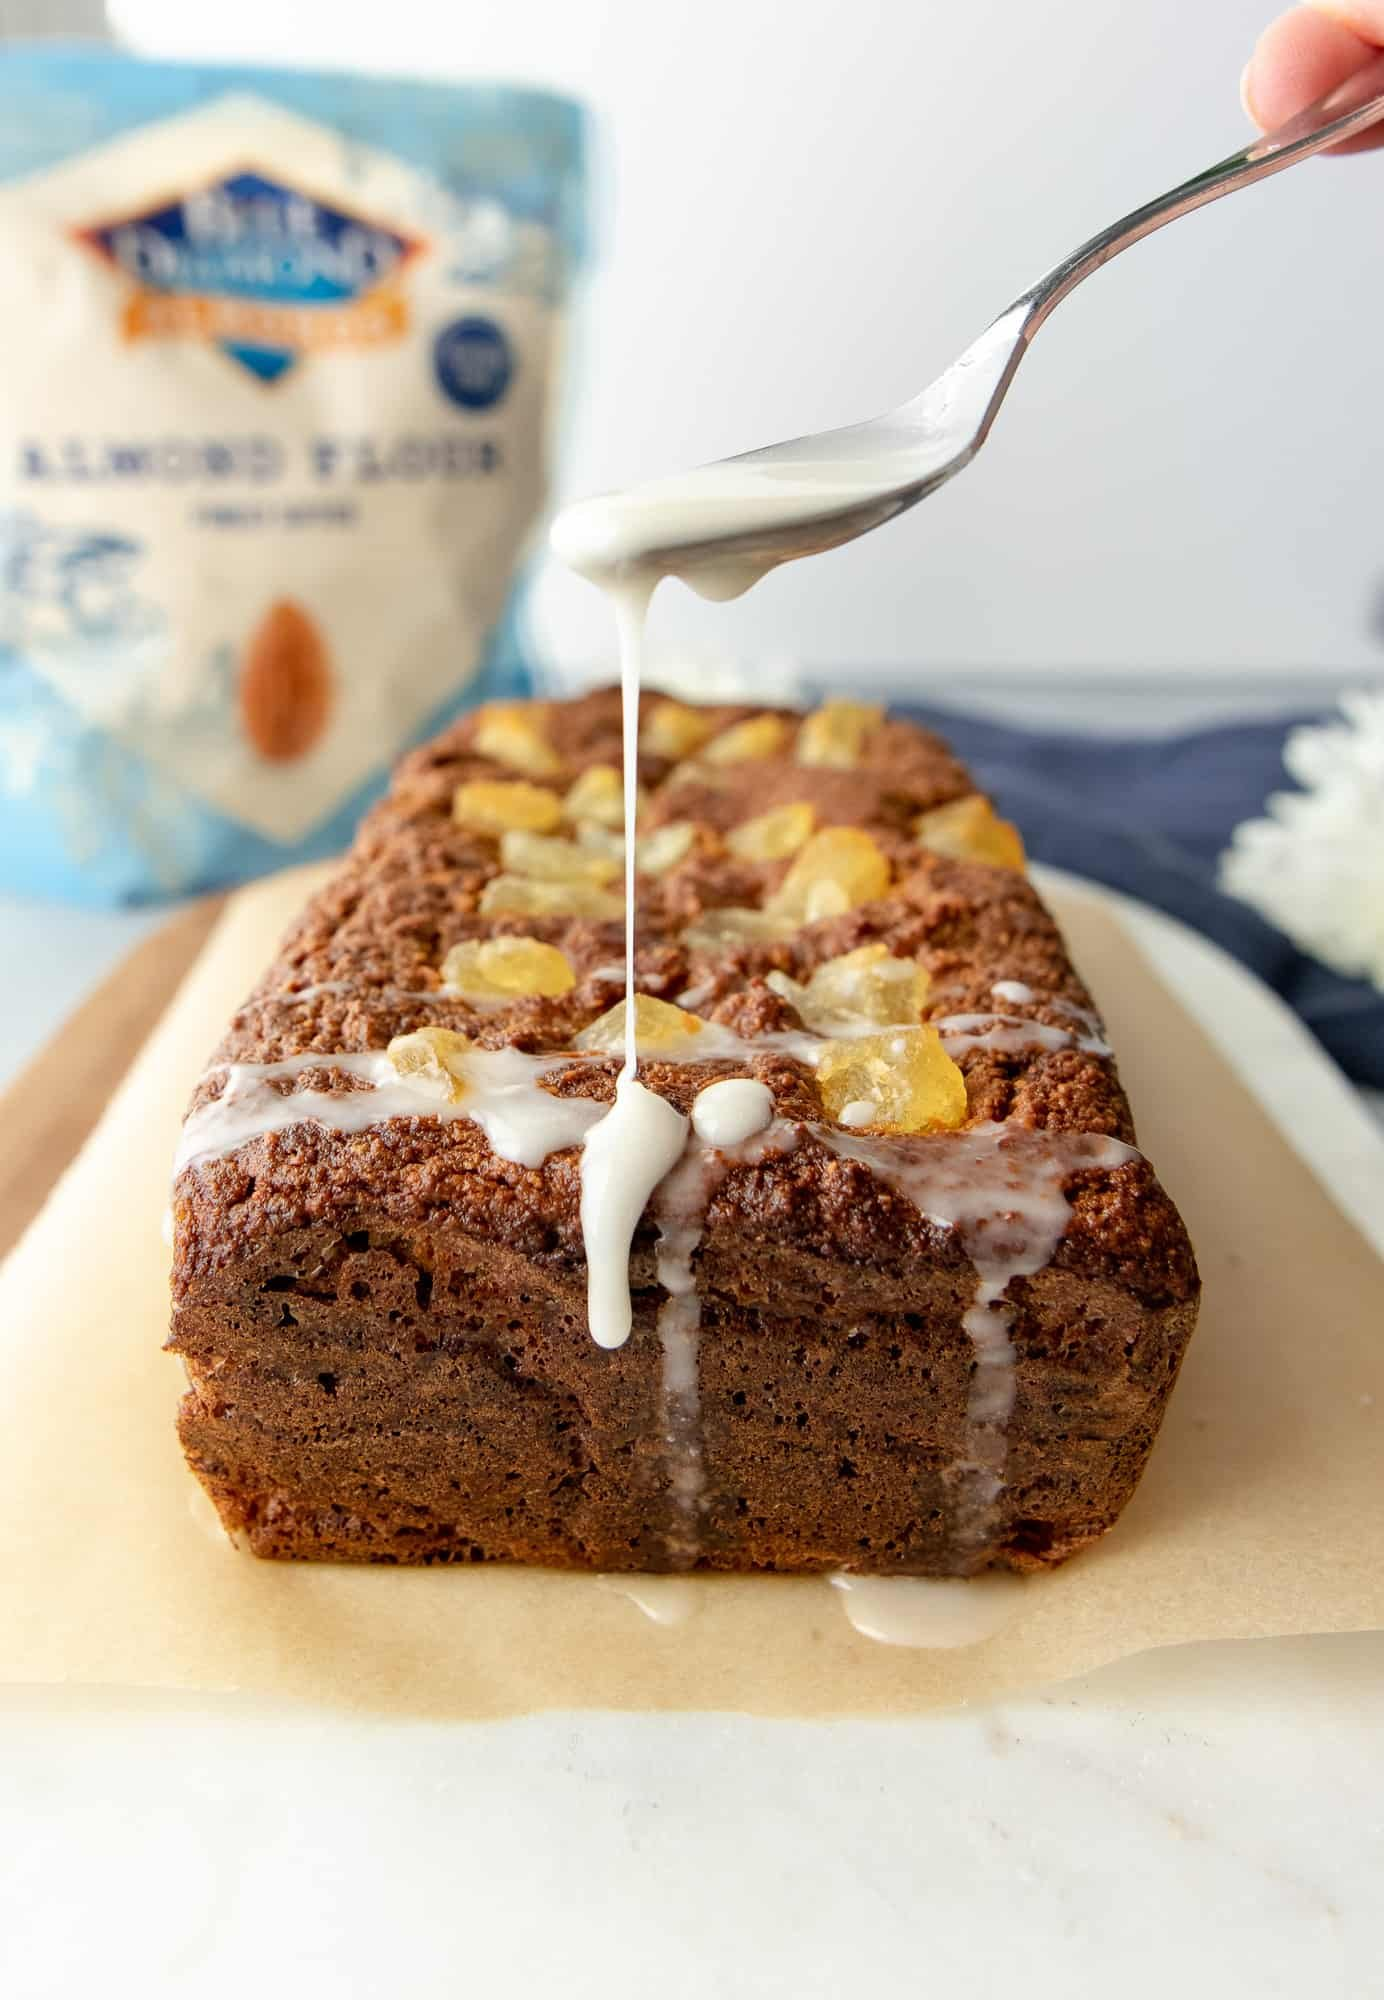 Pineapple loaf whole with spoon drizzling coconut cream on top.